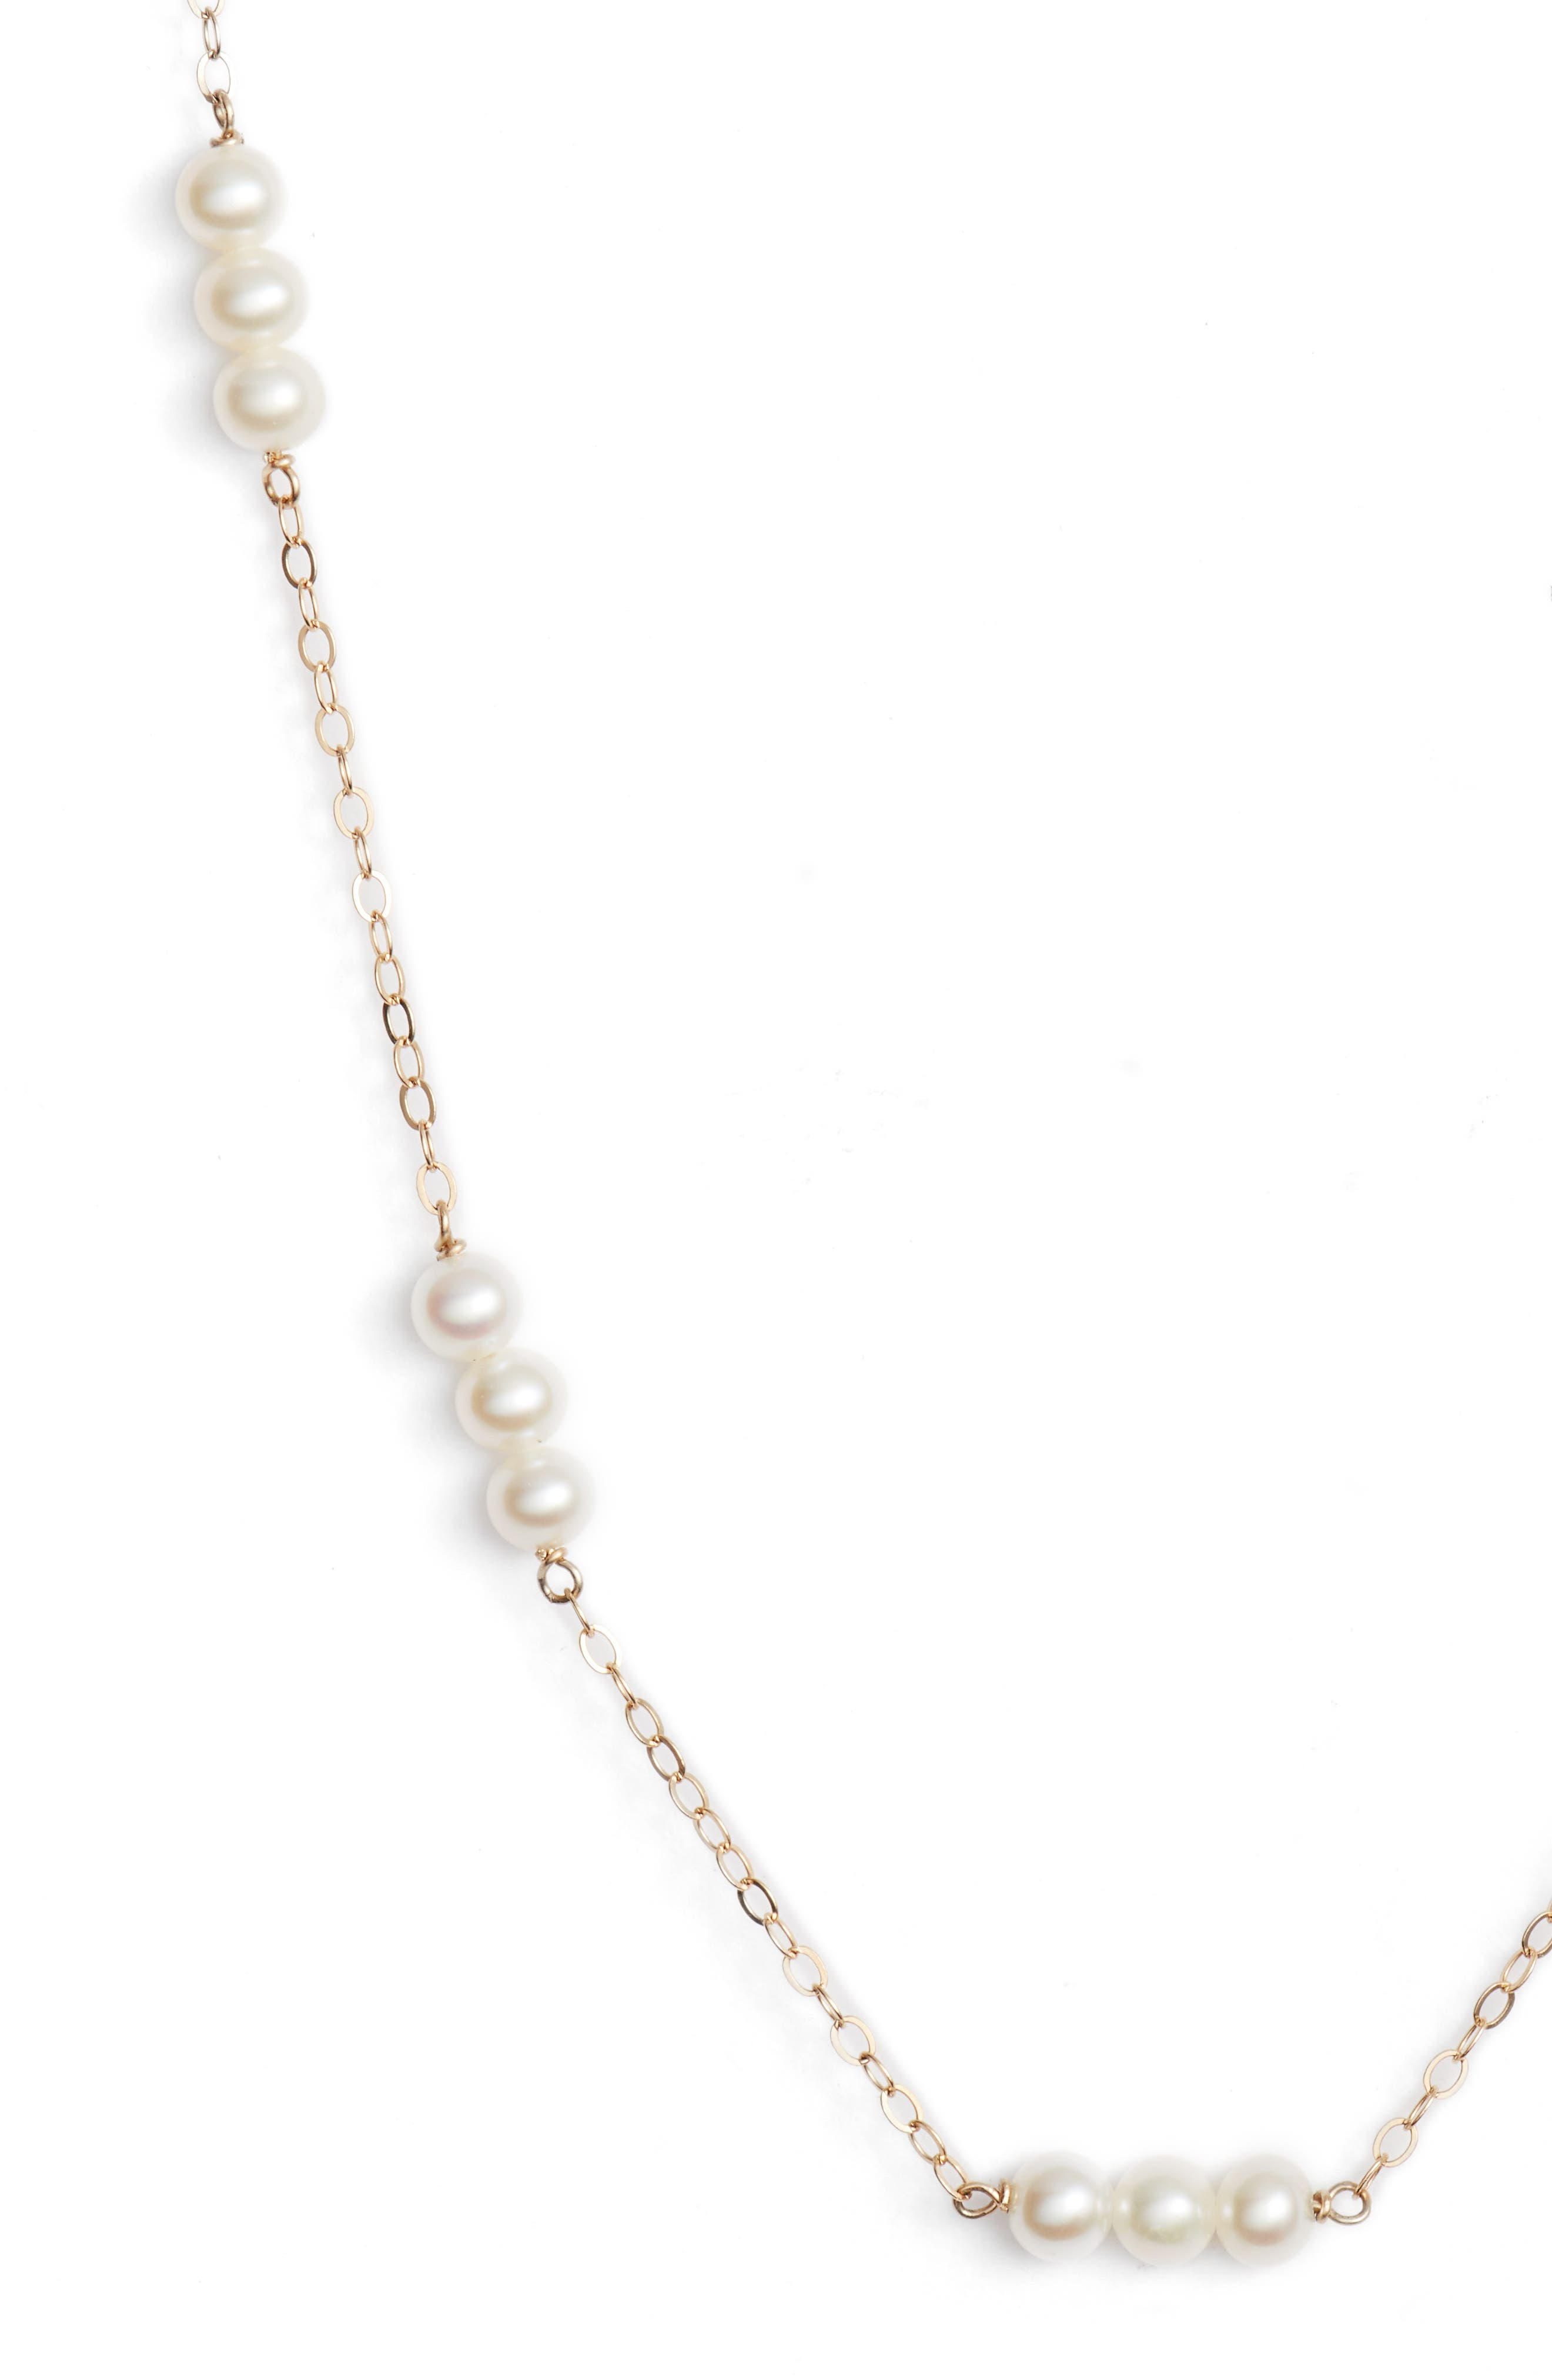 Pearl Triplet Necklace,                             Alternate thumbnail 2, color,                             Yellow Gold/ White Pearl